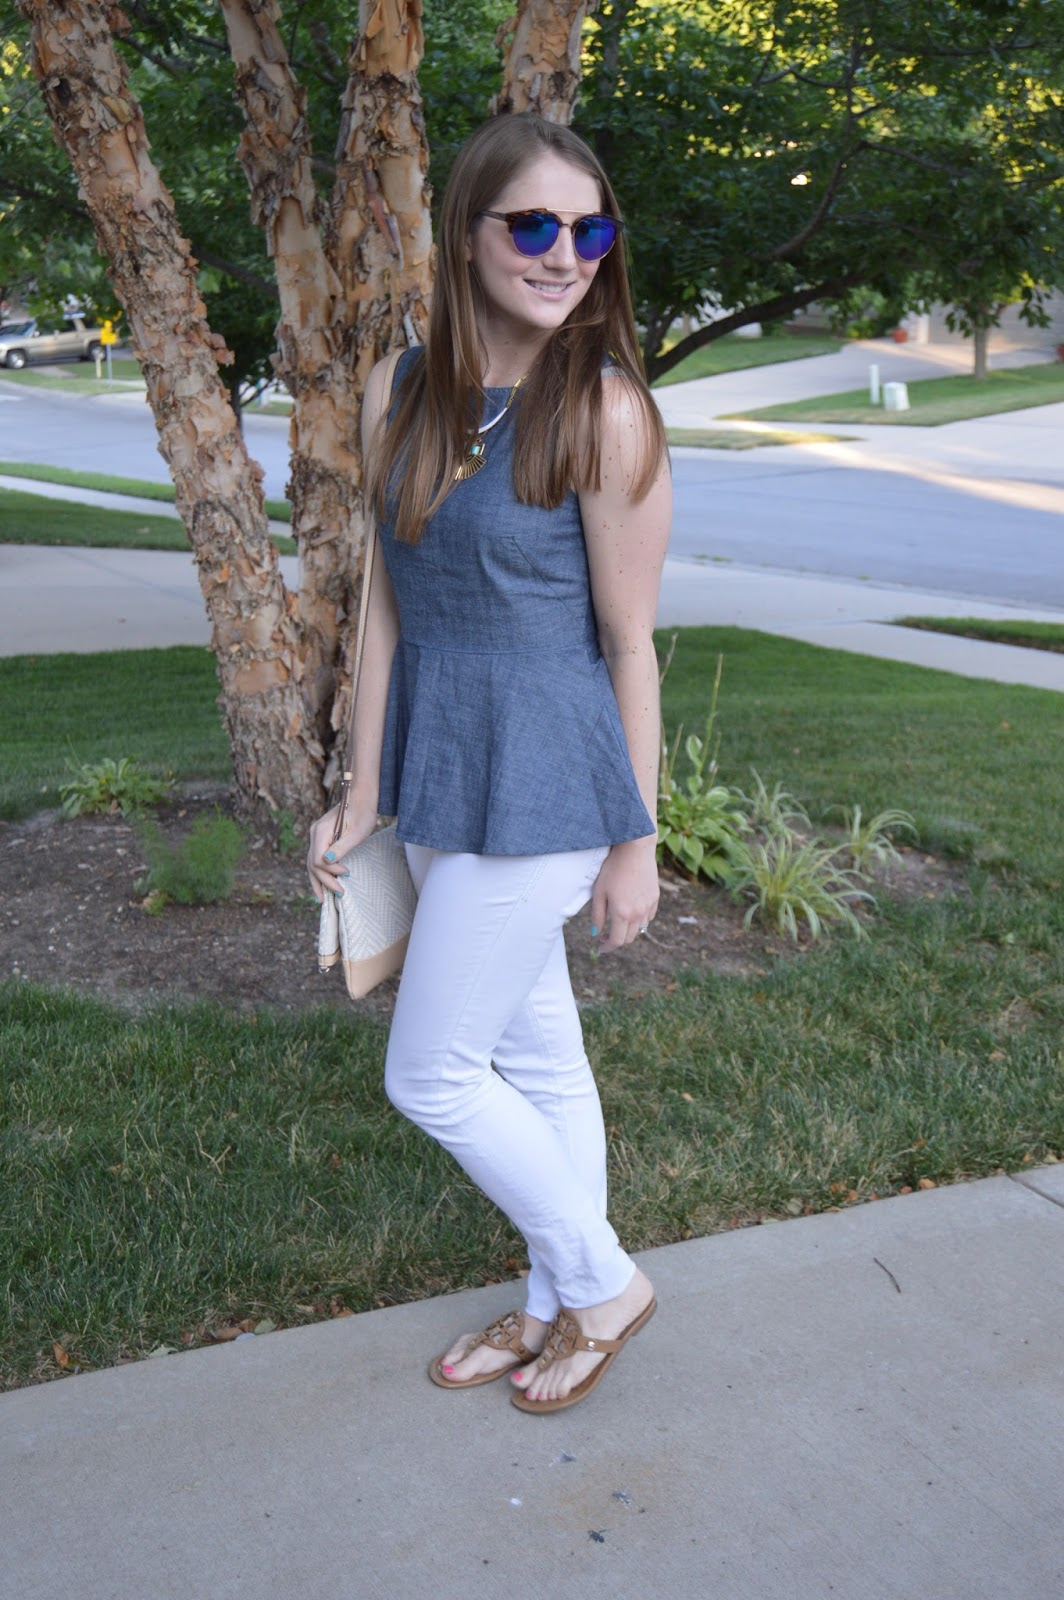 chambray with white denim | chambray top outfit ideas | white skinny jeans with a chambray top | summer outfit ideas | summer style | summer look book | banana republic your life styled | kansas city blogger |